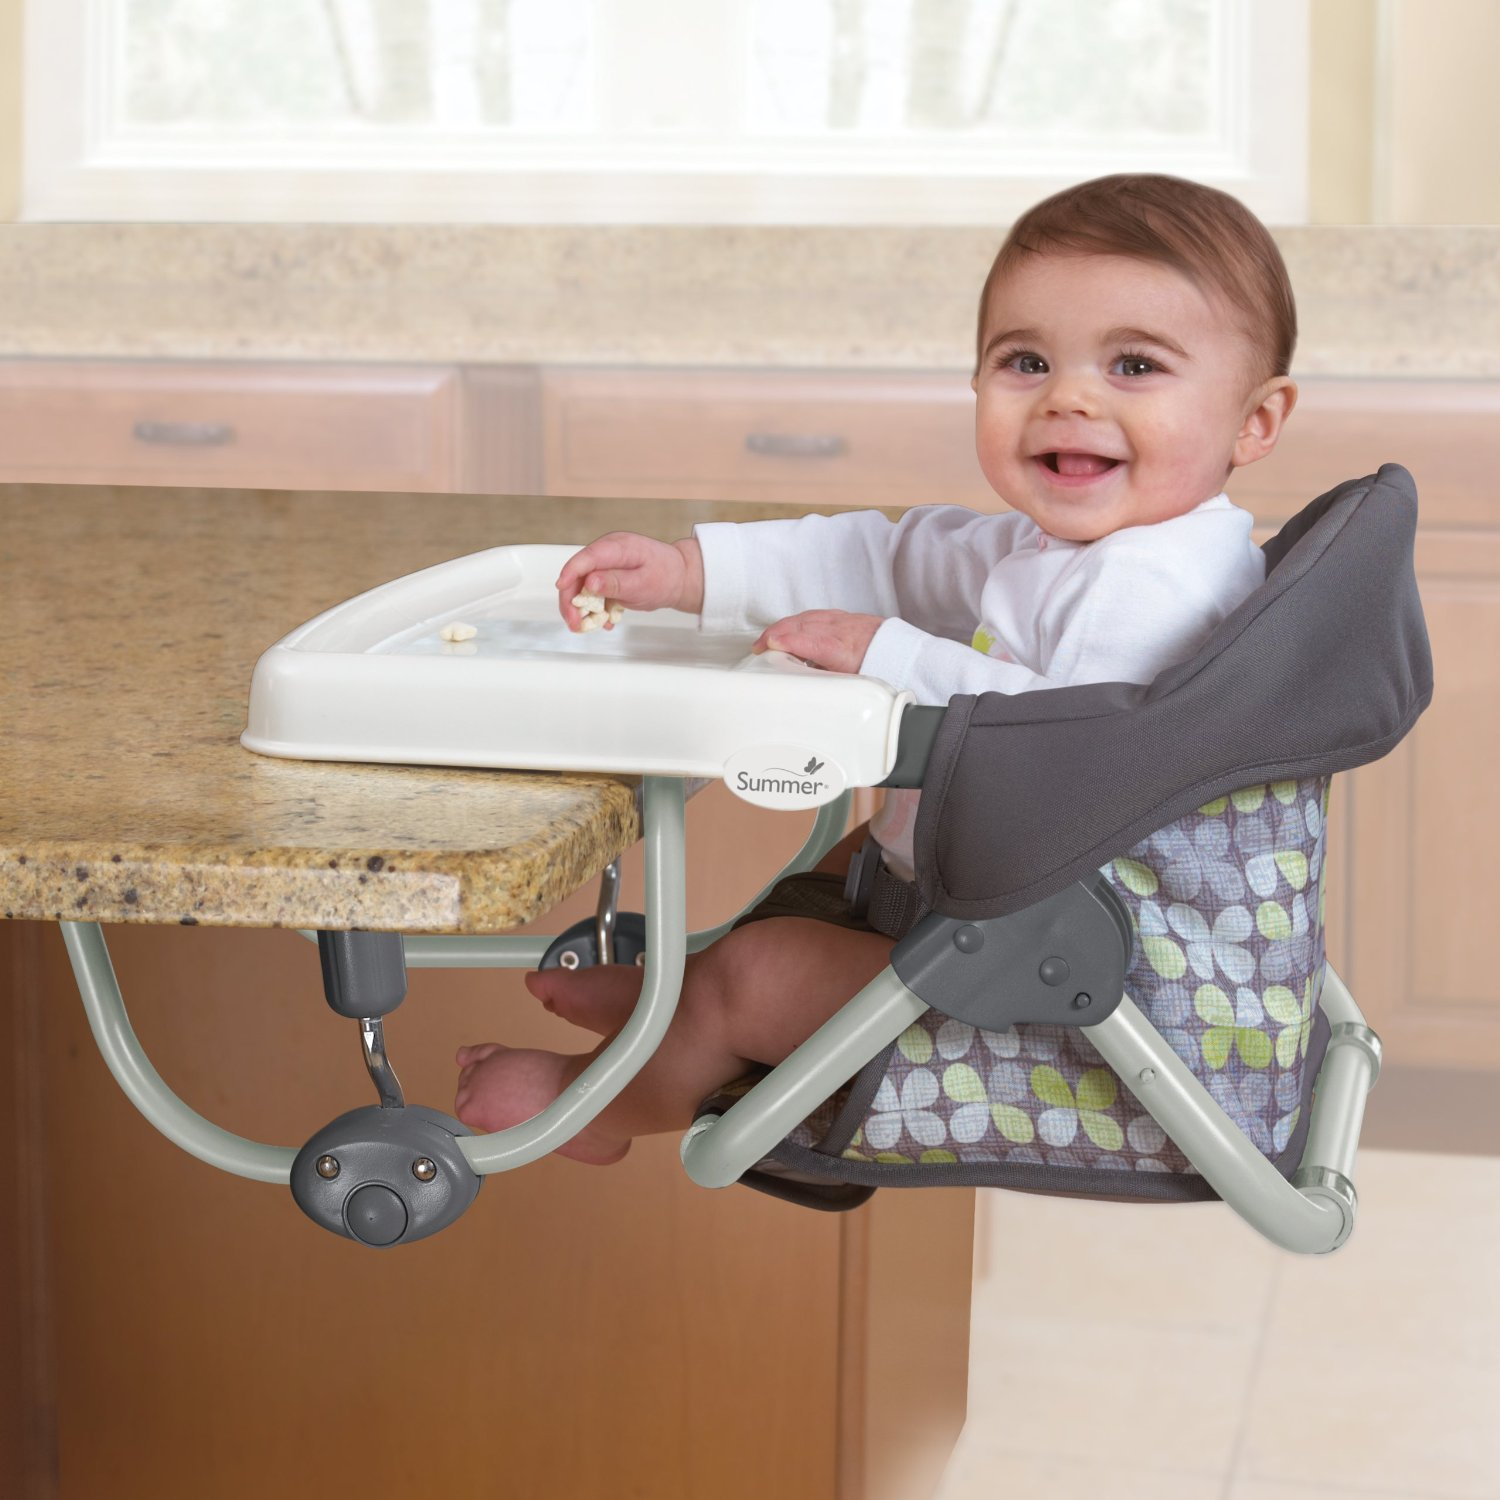 Charmant Best Option For Long Term U0026 Portable Home And Go Baby To Kid High Chair:  Attaches To Table And Hooks To Just About Any Secured Surface